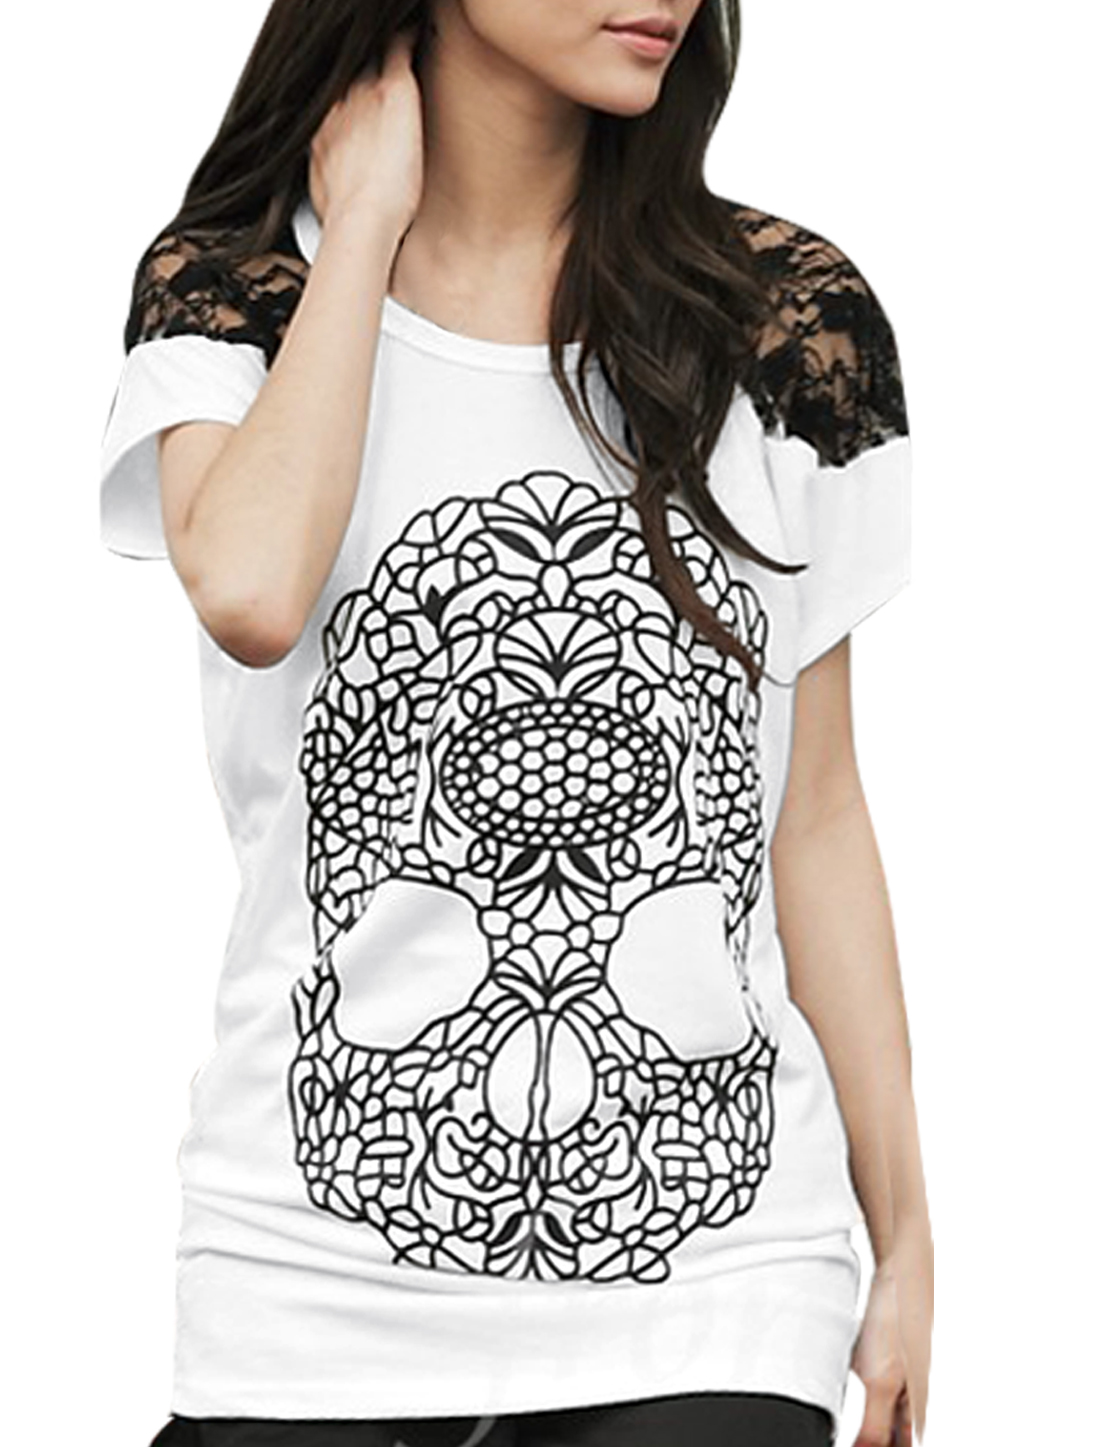 Women NEW Fashion Lace Panel Semi-Sheer Back White T-Shirt M